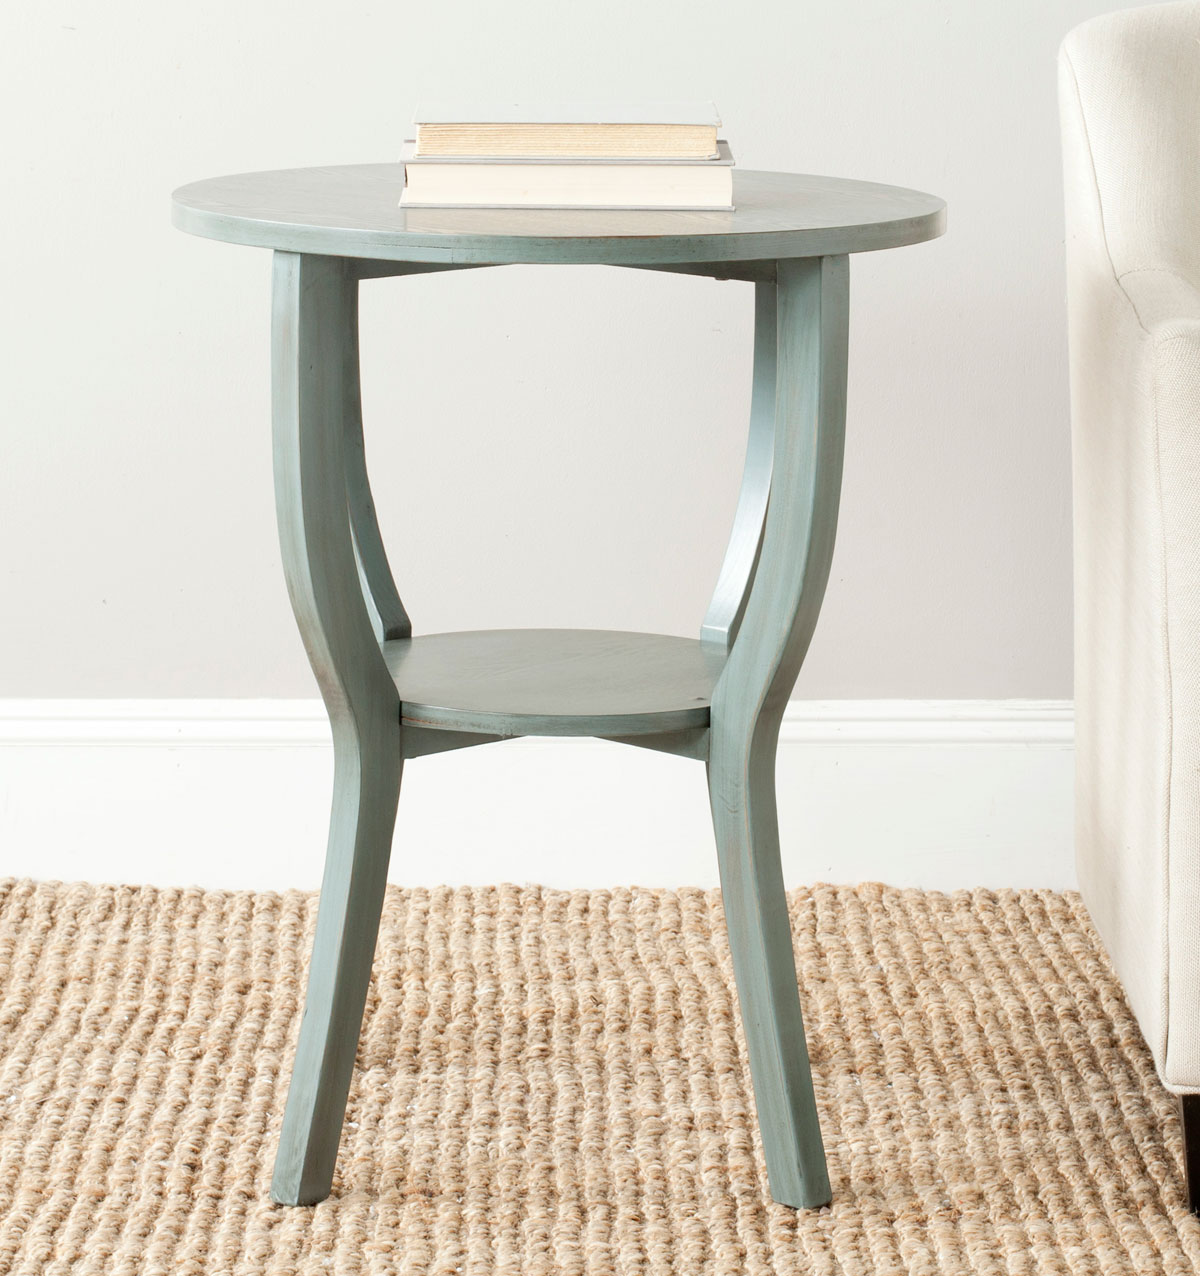 accent tables furniture safavieh room round pedestal table wood share this product patio with storage plastic chairs bunnings bedside plans console chair pallet end patterned